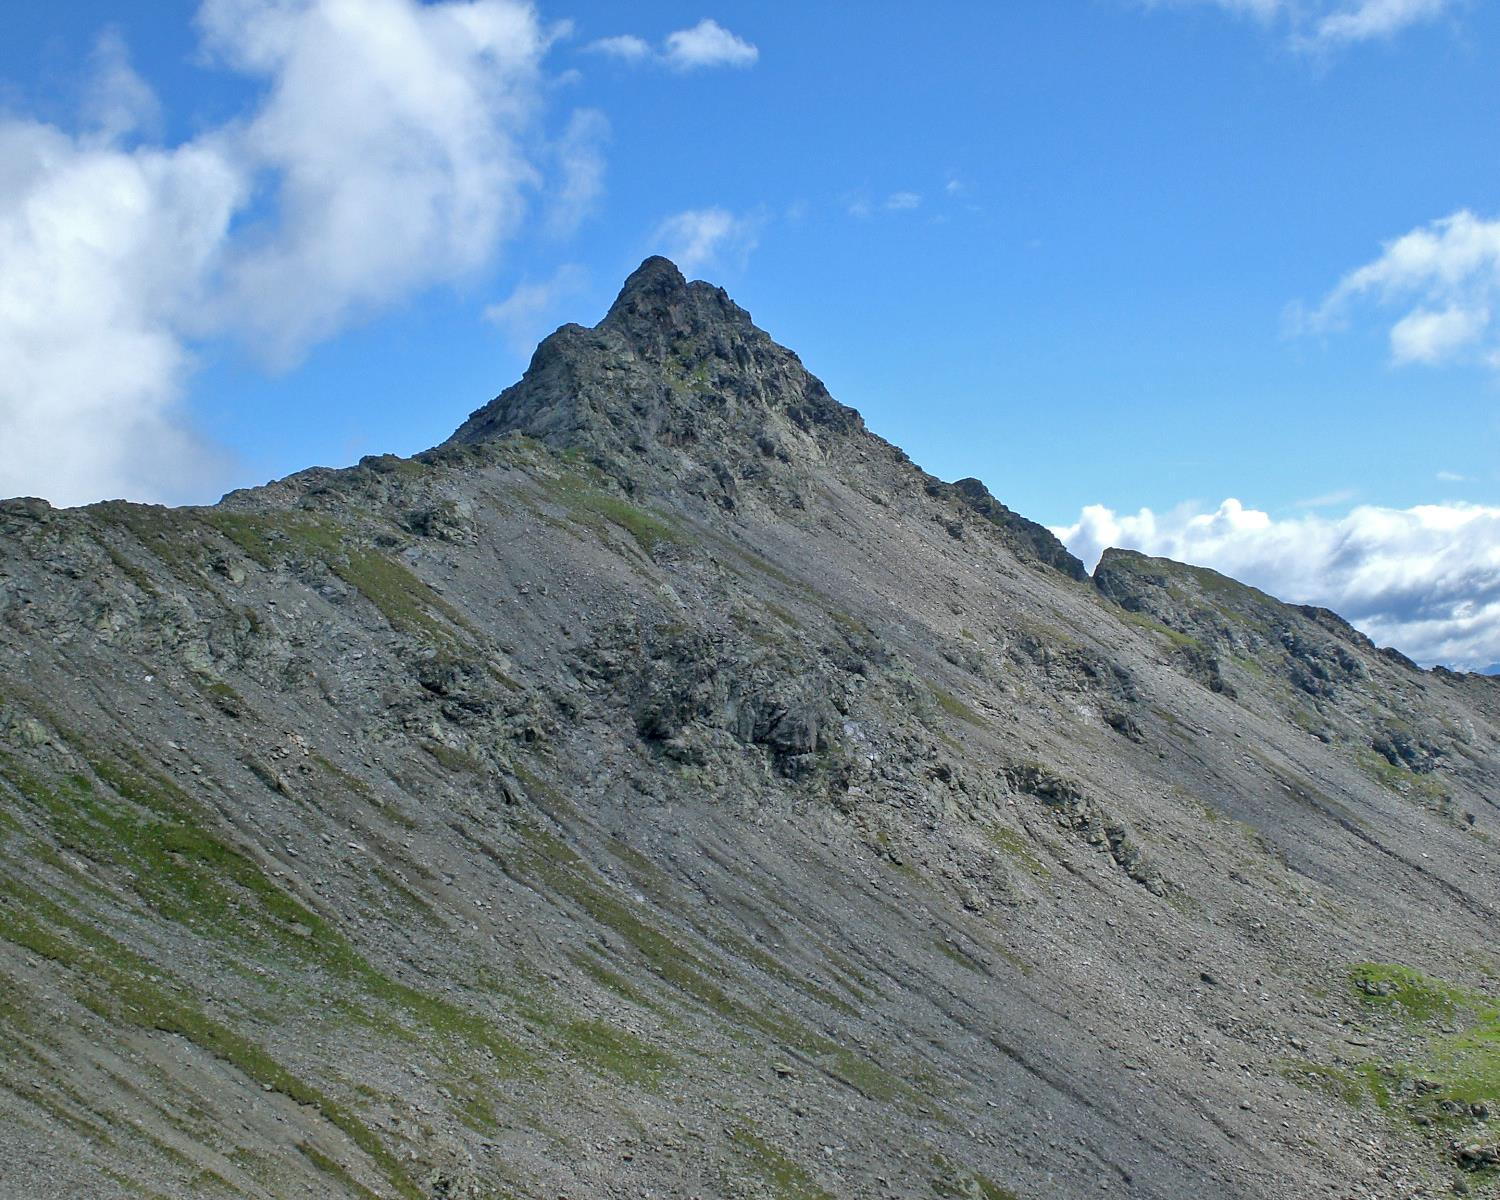 From the Penserjoch pass to the Tagewaldhorn